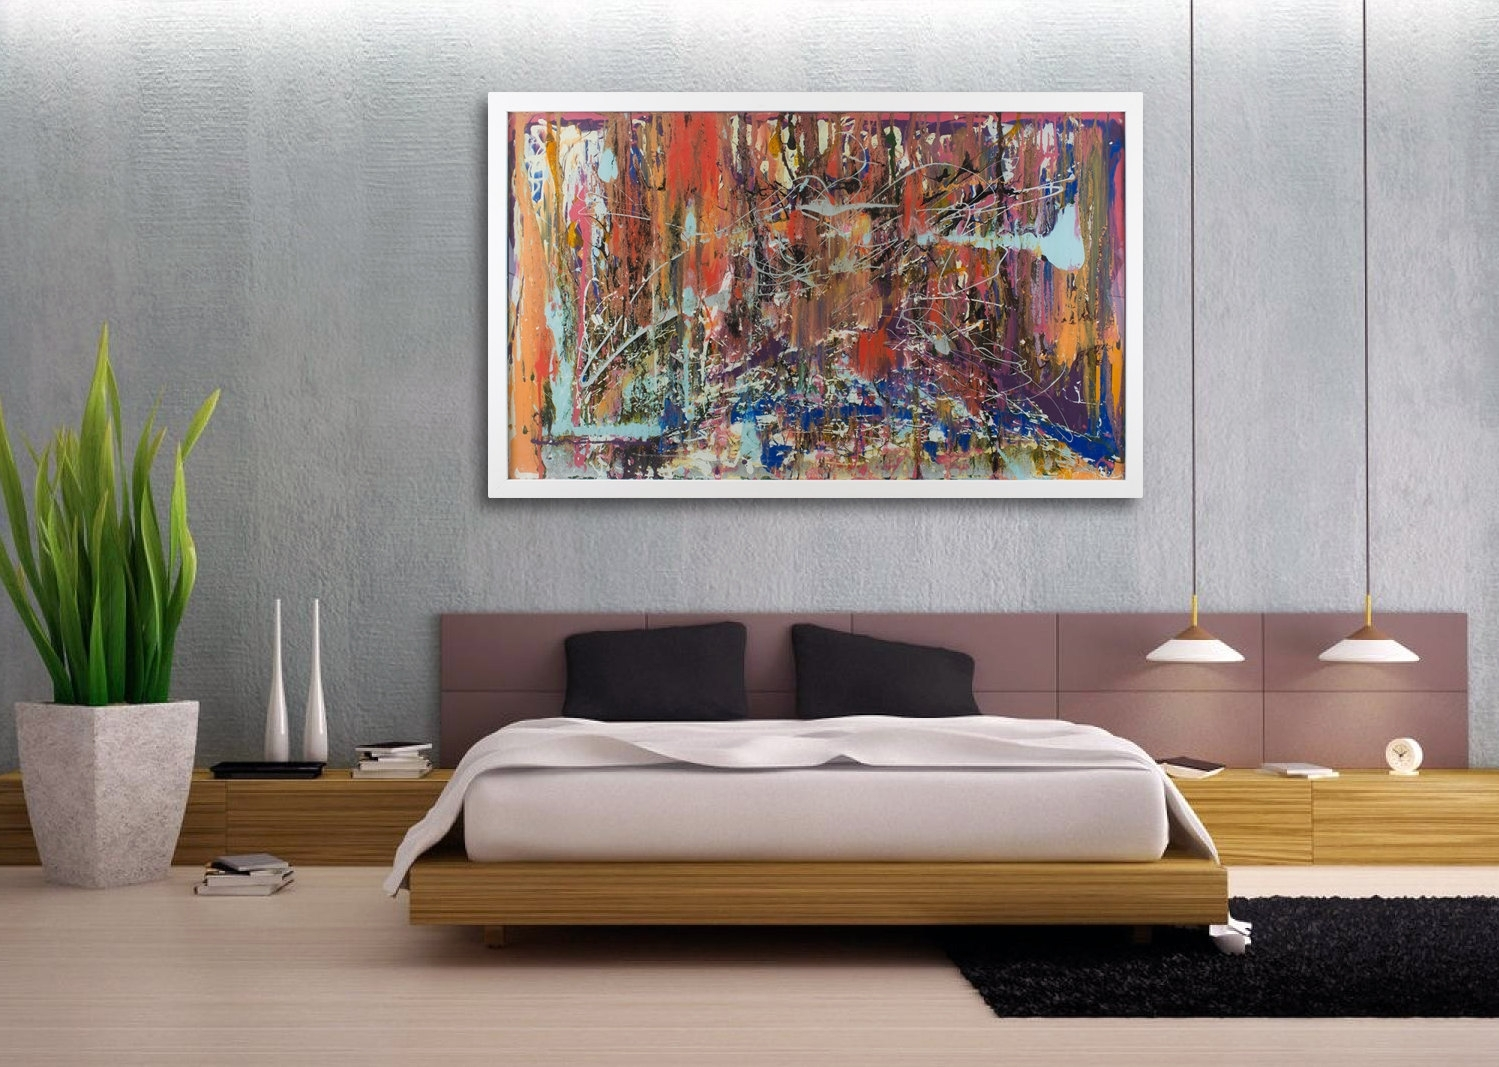 Expensive Large Canvas Wall Art Bedroom — Joanne Russo Homesjoanne With Most Popular Bedroom Canvas Wall Art (View 14 of 15)